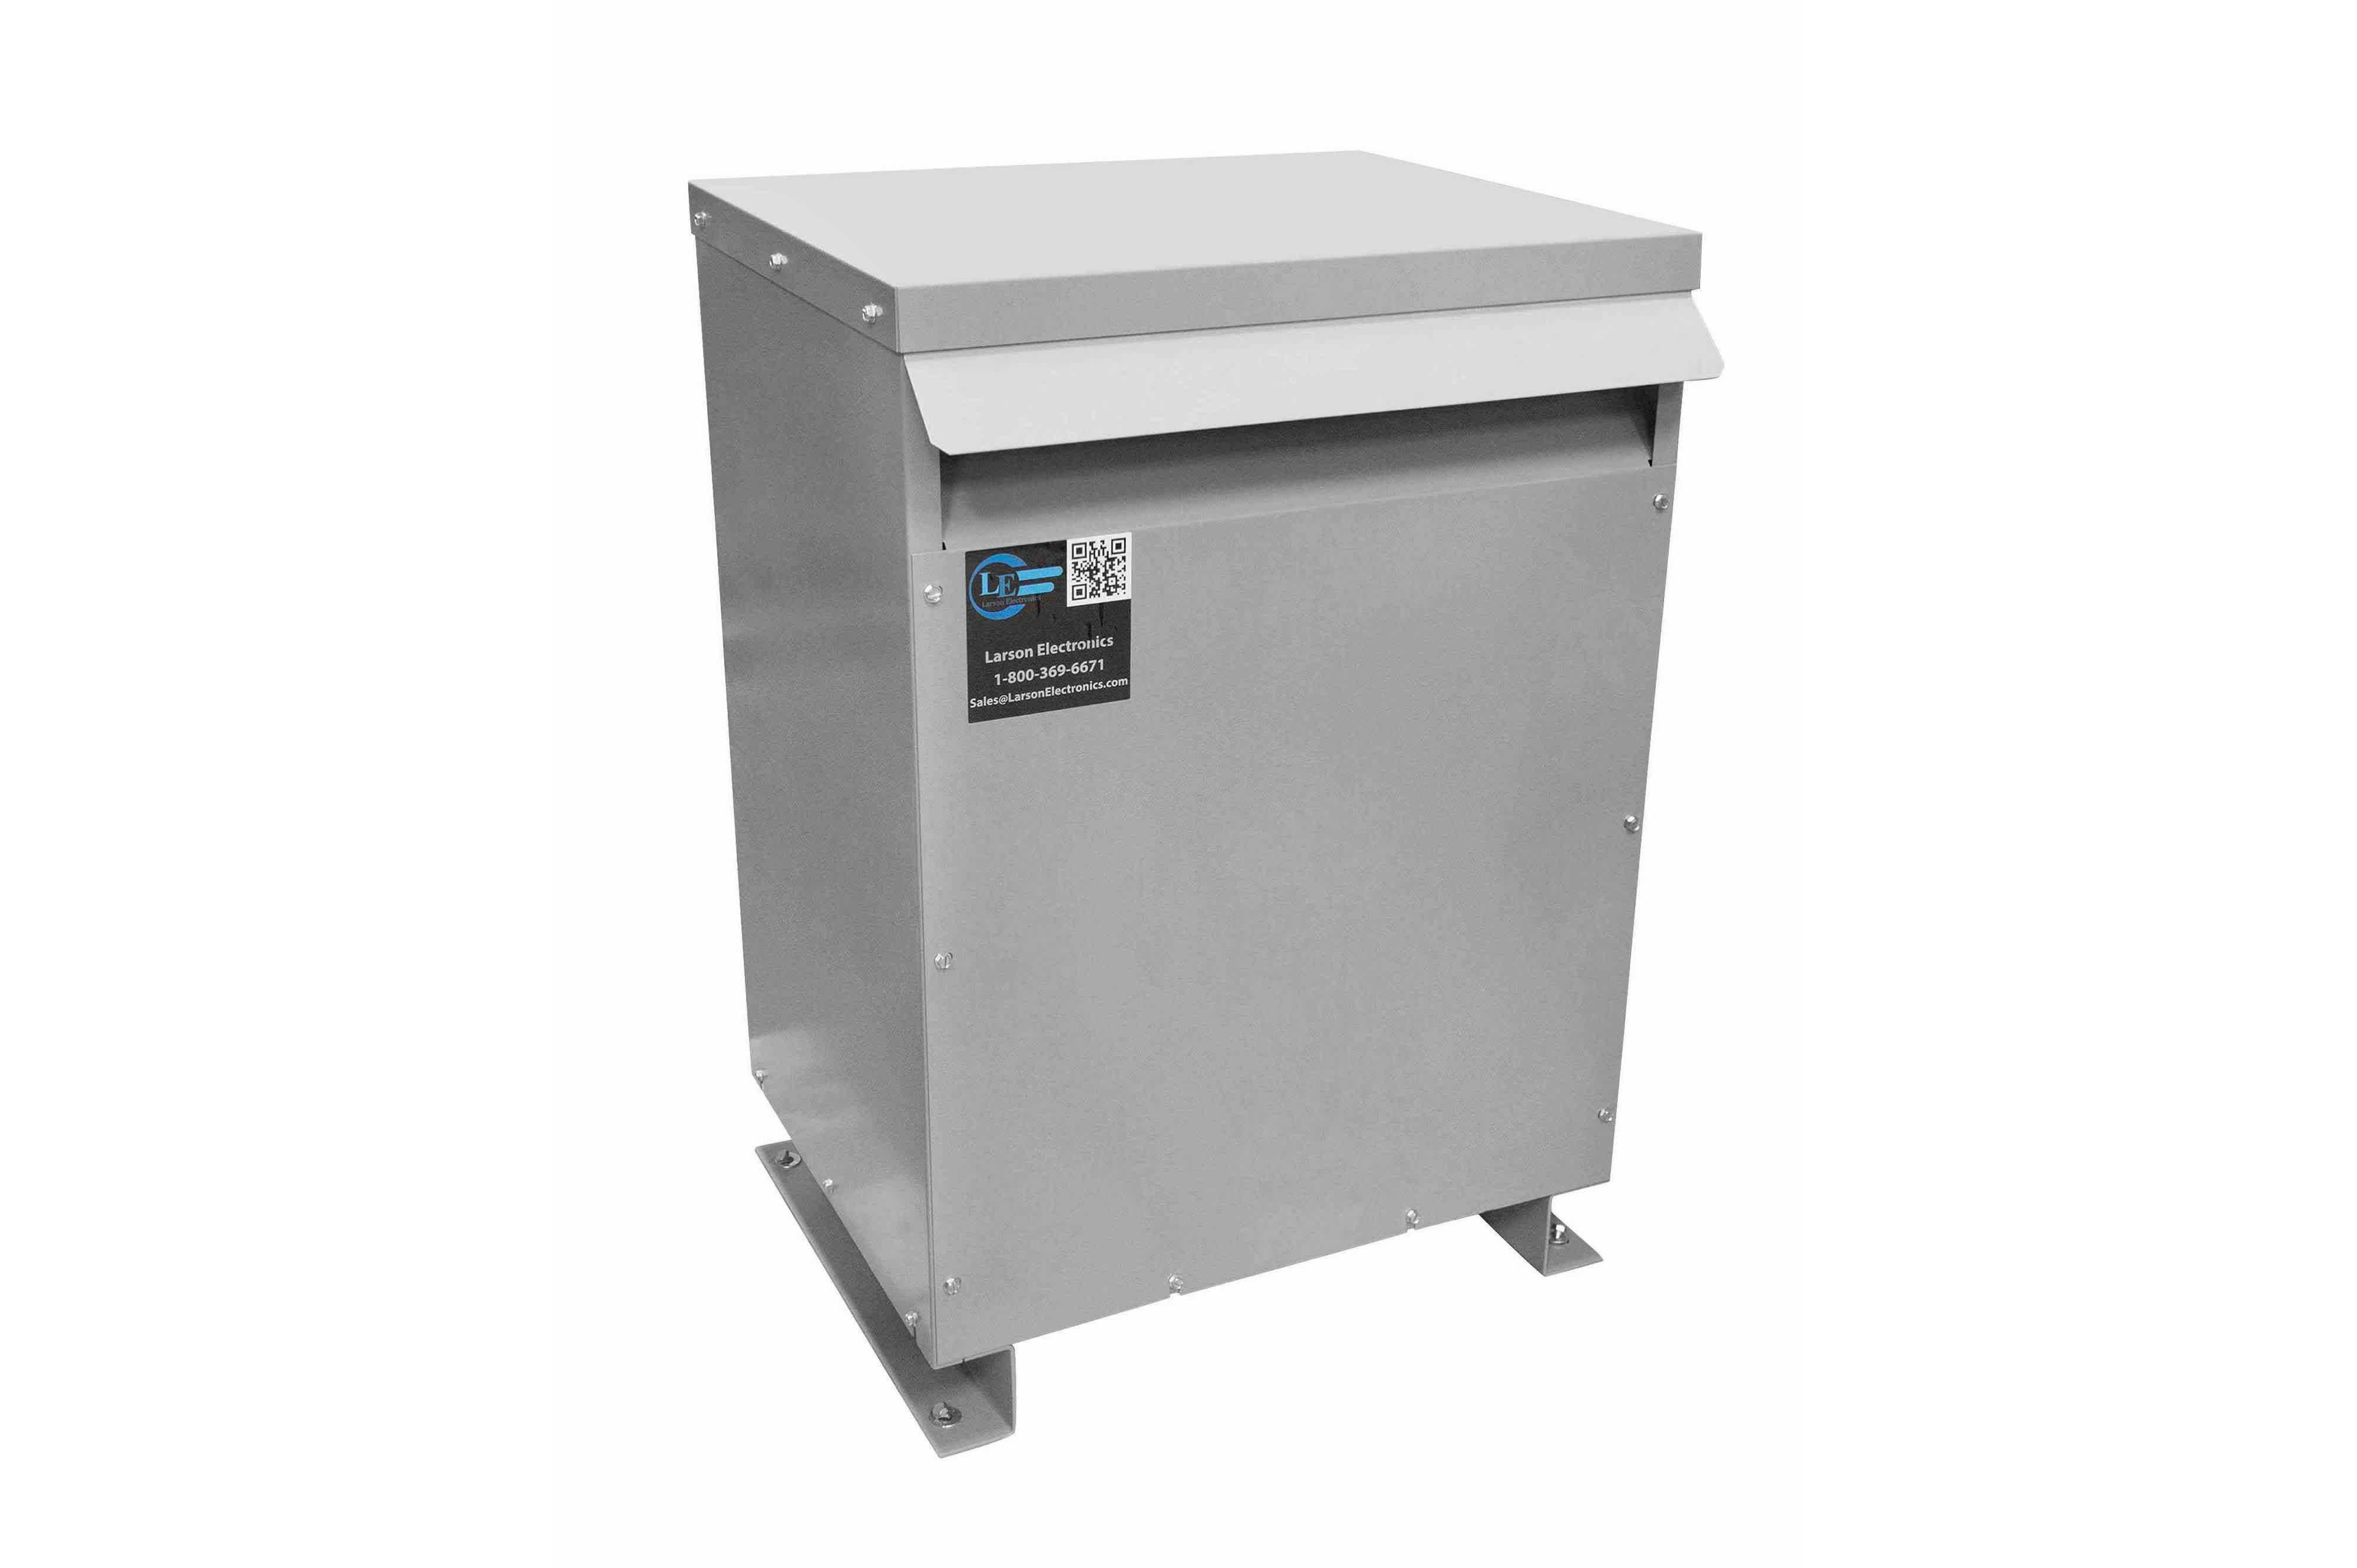 15 kVA 3PH Isolation Transformer, 400V Wye Primary, 240V/120 Delta Secondary, N3R, Ventilated, 60 Hz